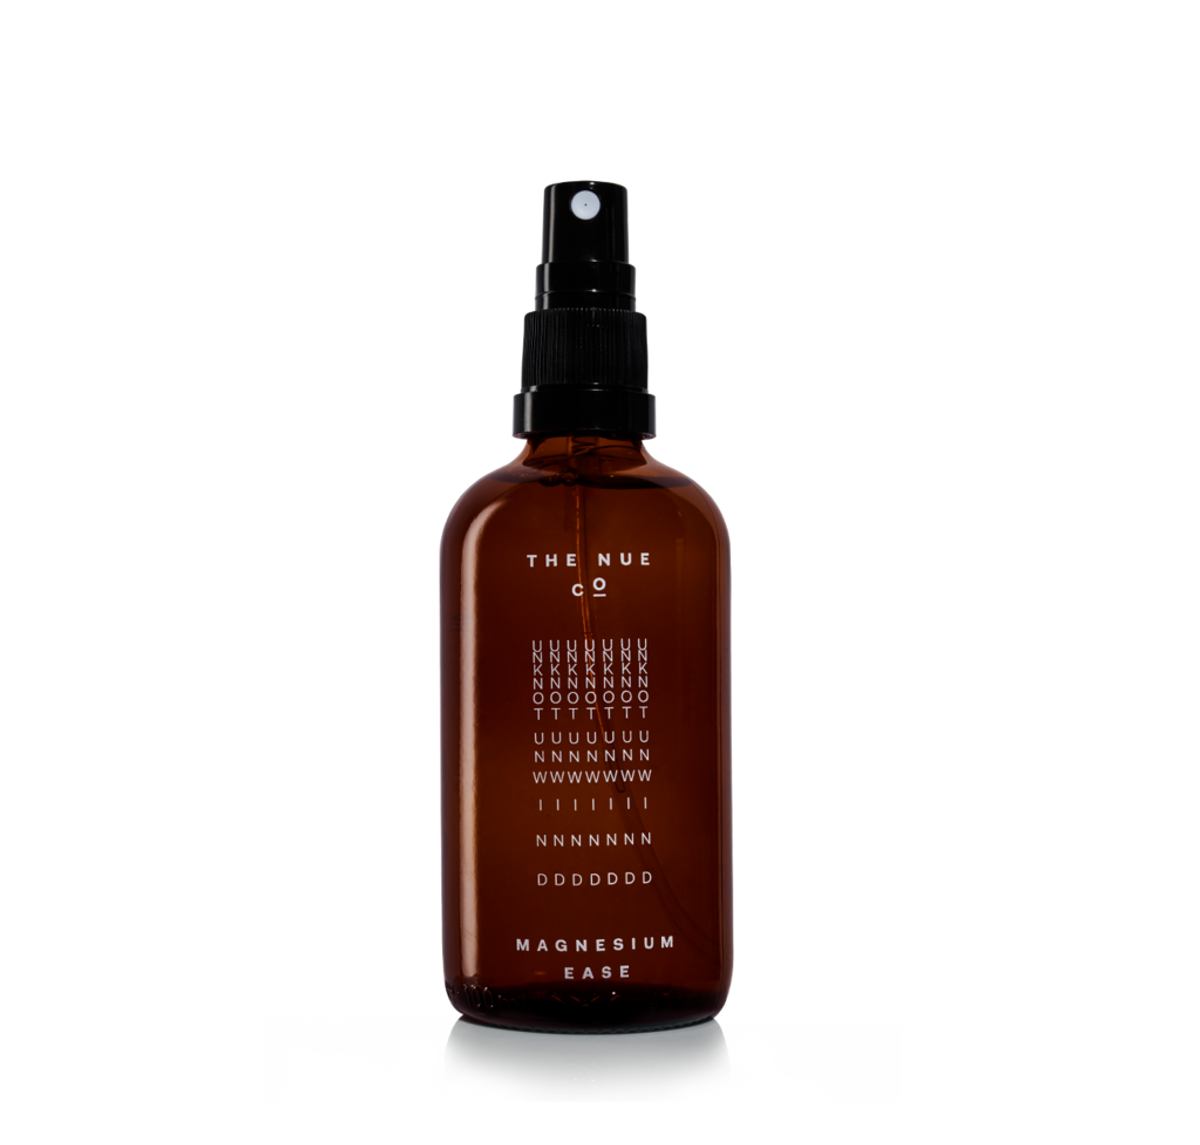 the nue co magnesium ease